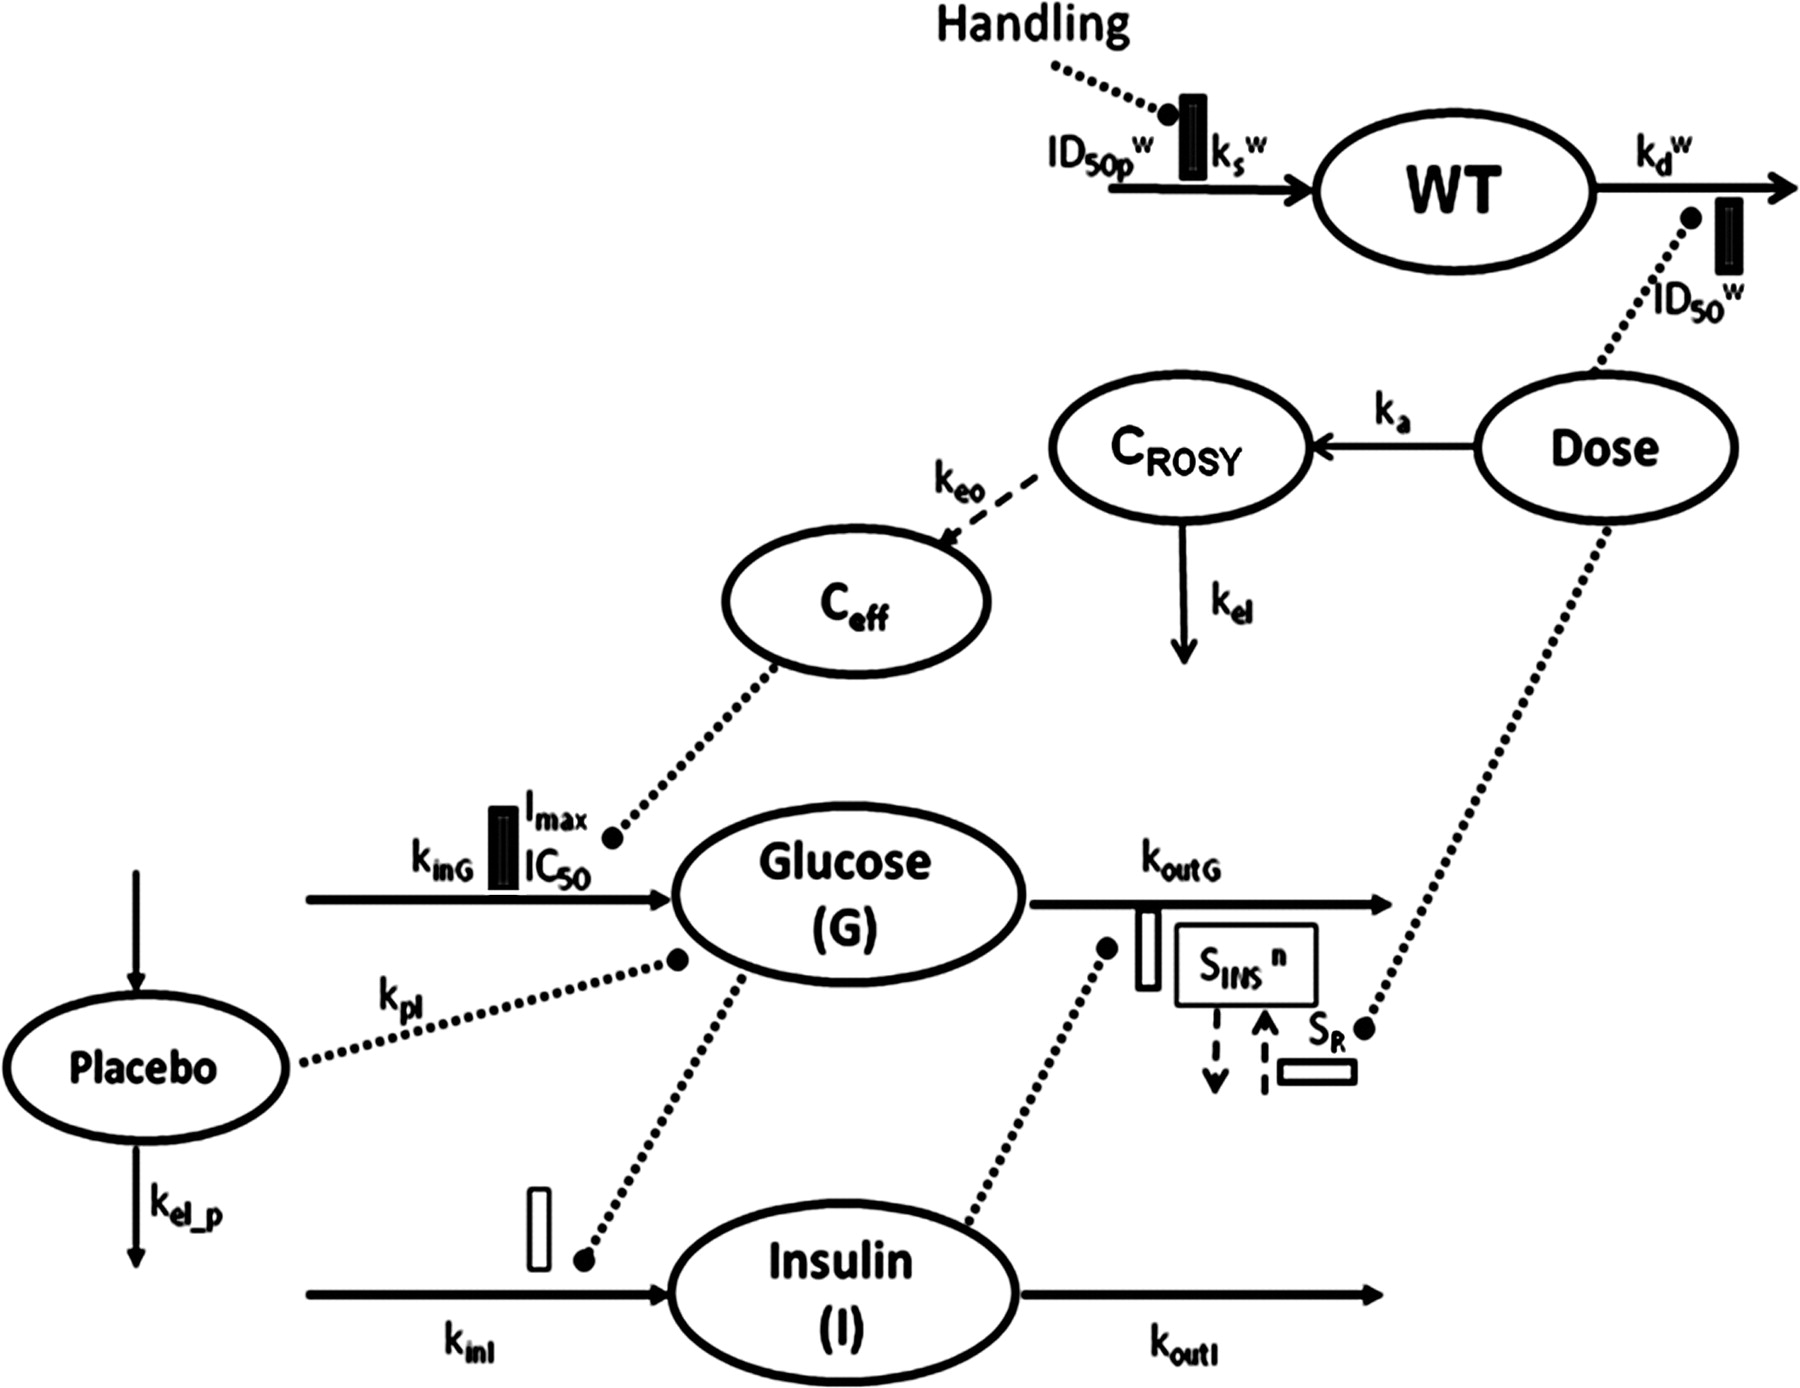 Modeling Disease Progression and Rosiglitazone